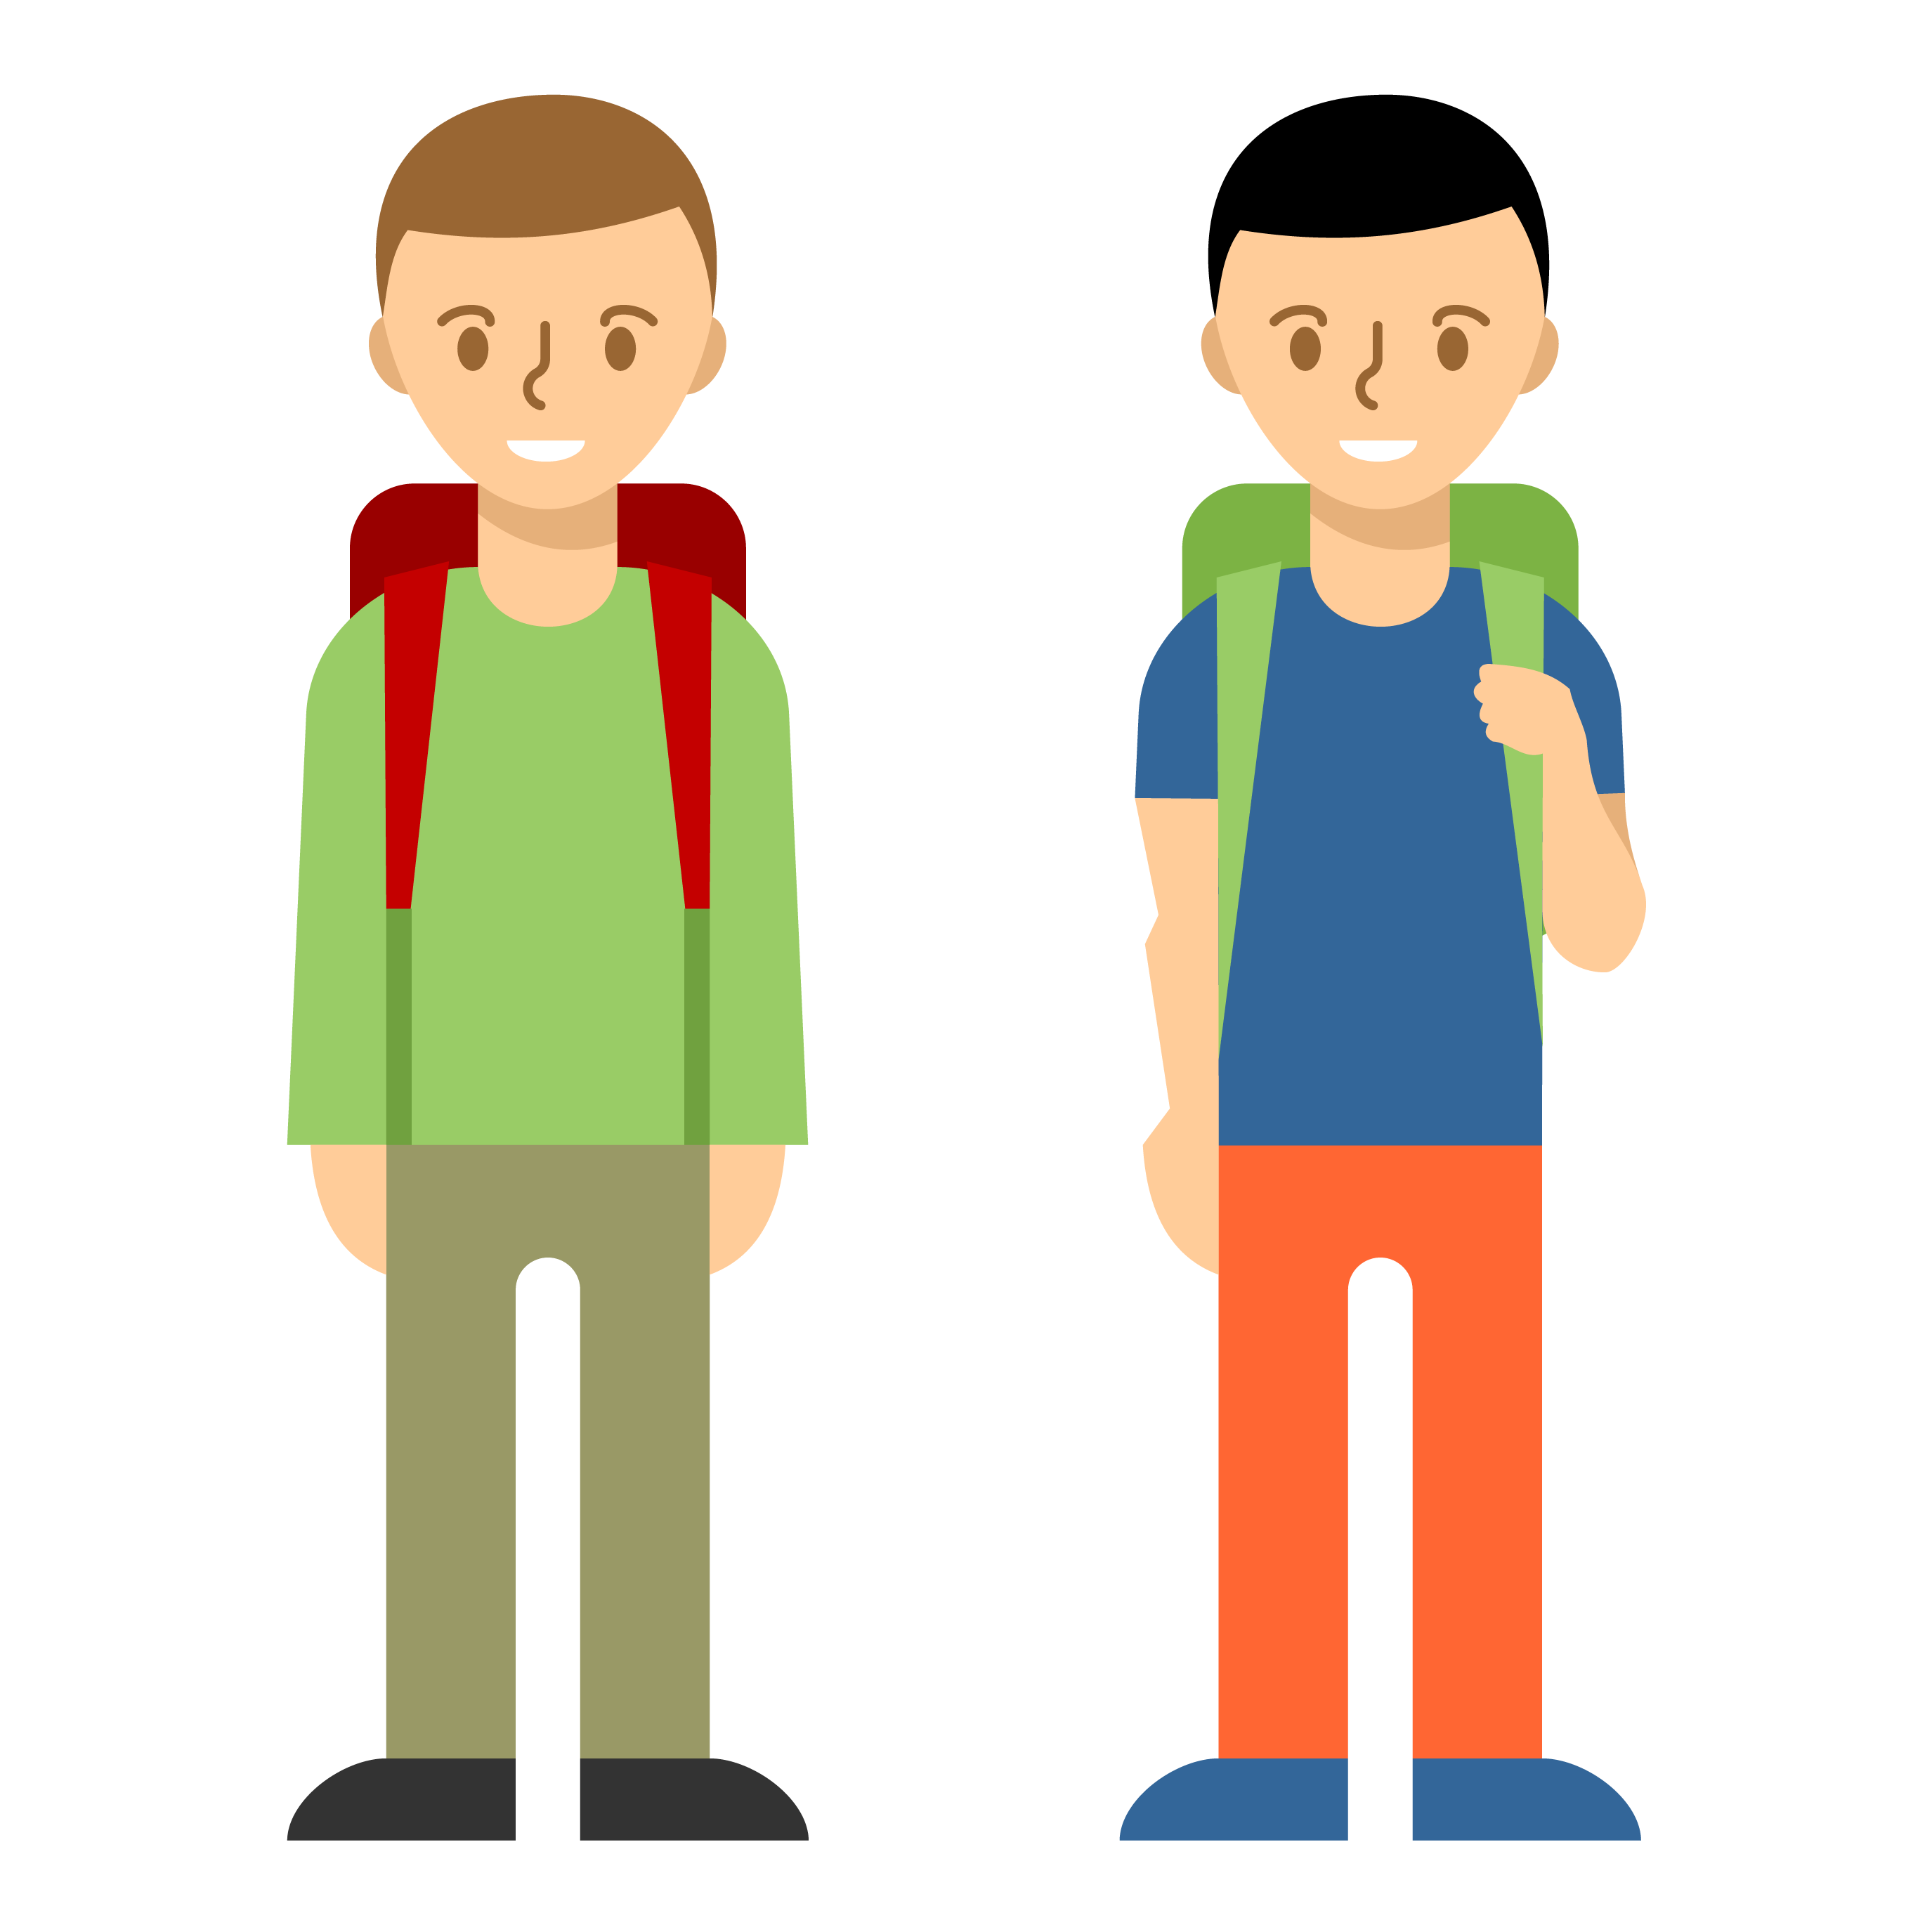 clipart freeuse download Student Estudante Drawing